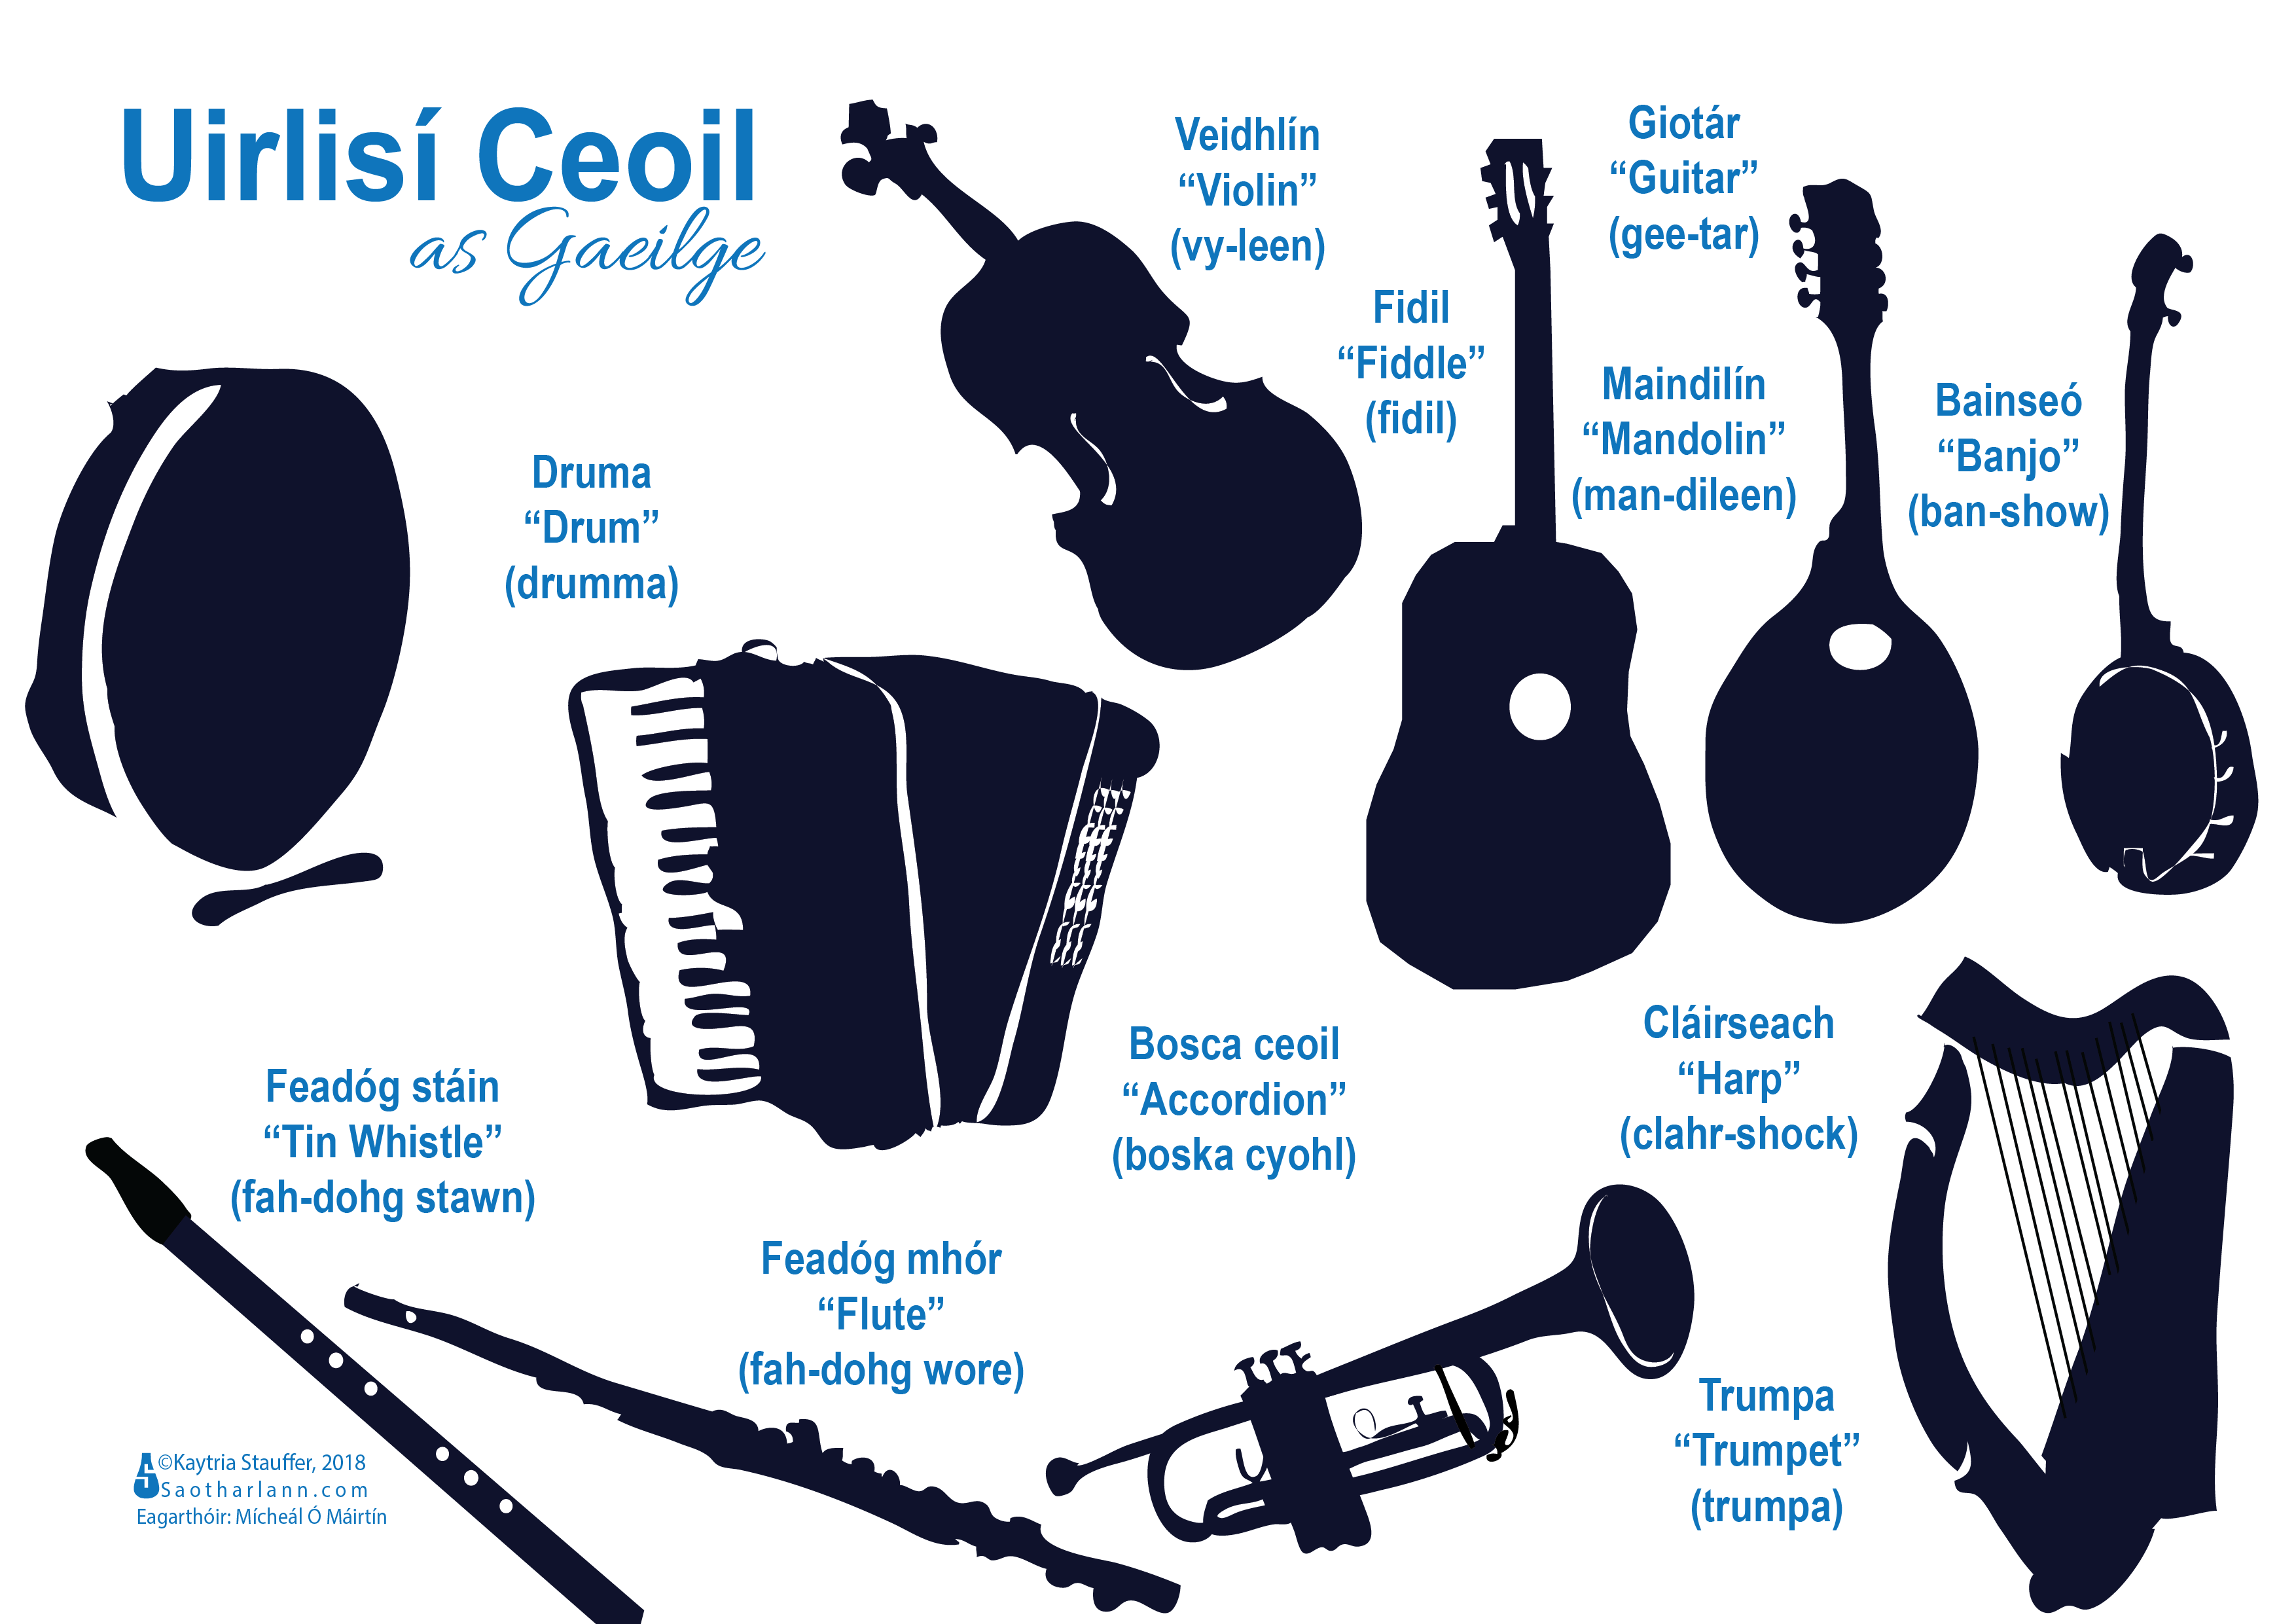 Uirlisi Ceoil A4 01